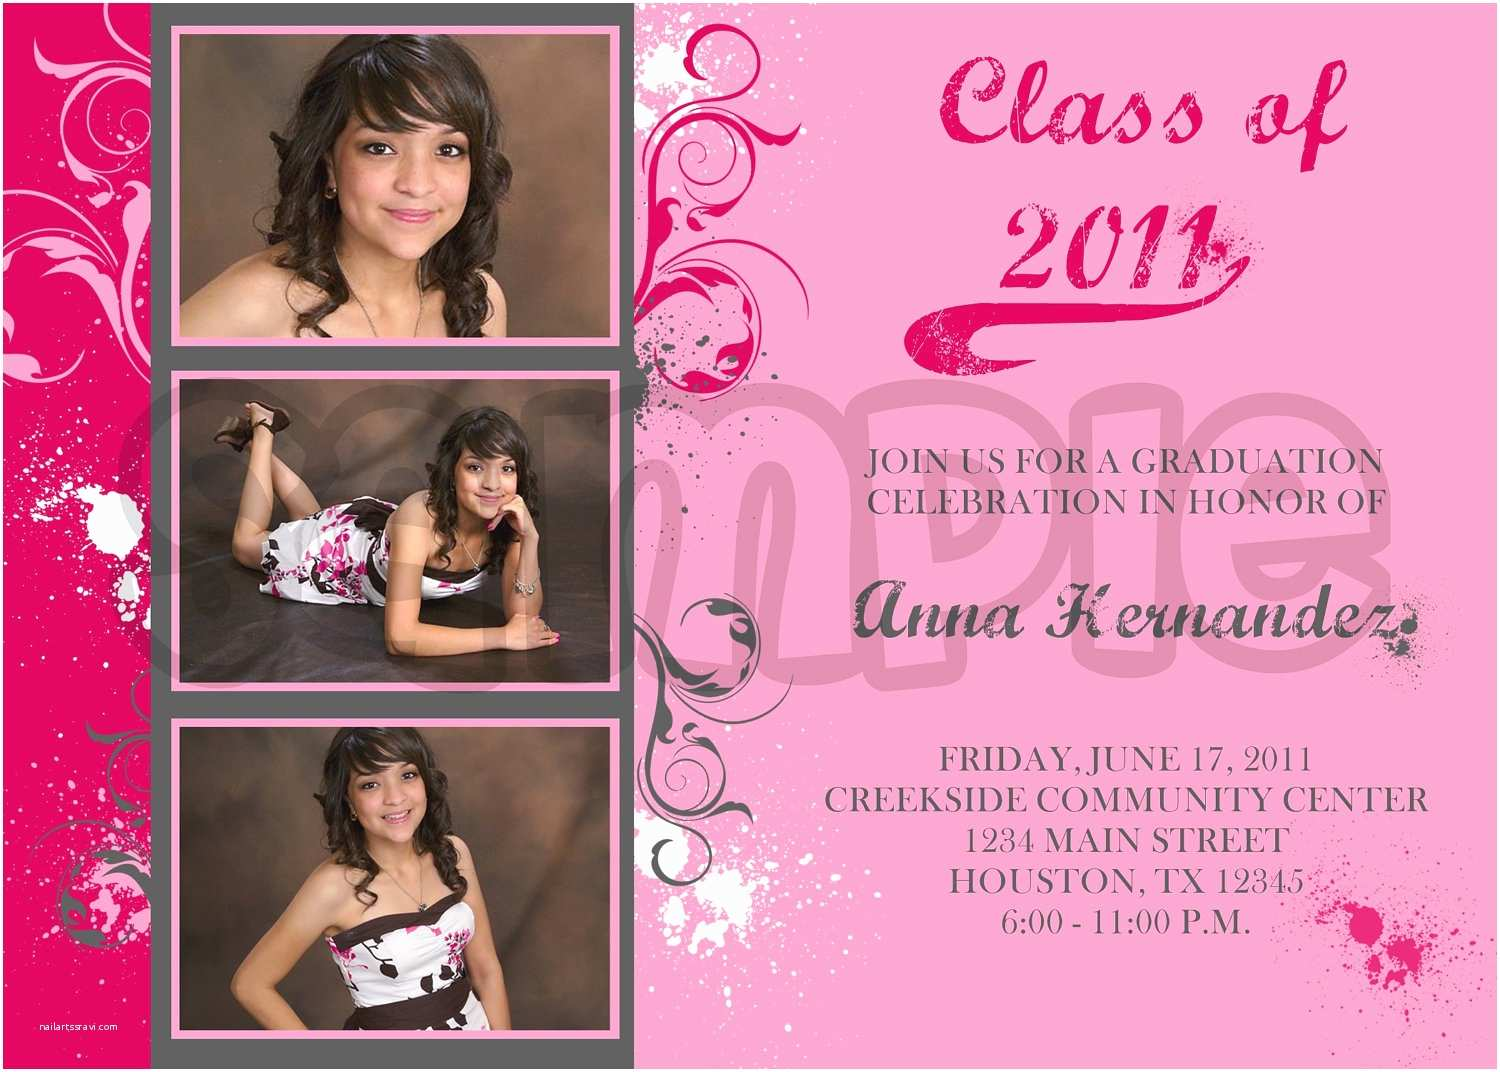 Graduation Party Invitations Ideas top 15 Cheap Graduation Party Invitations for You